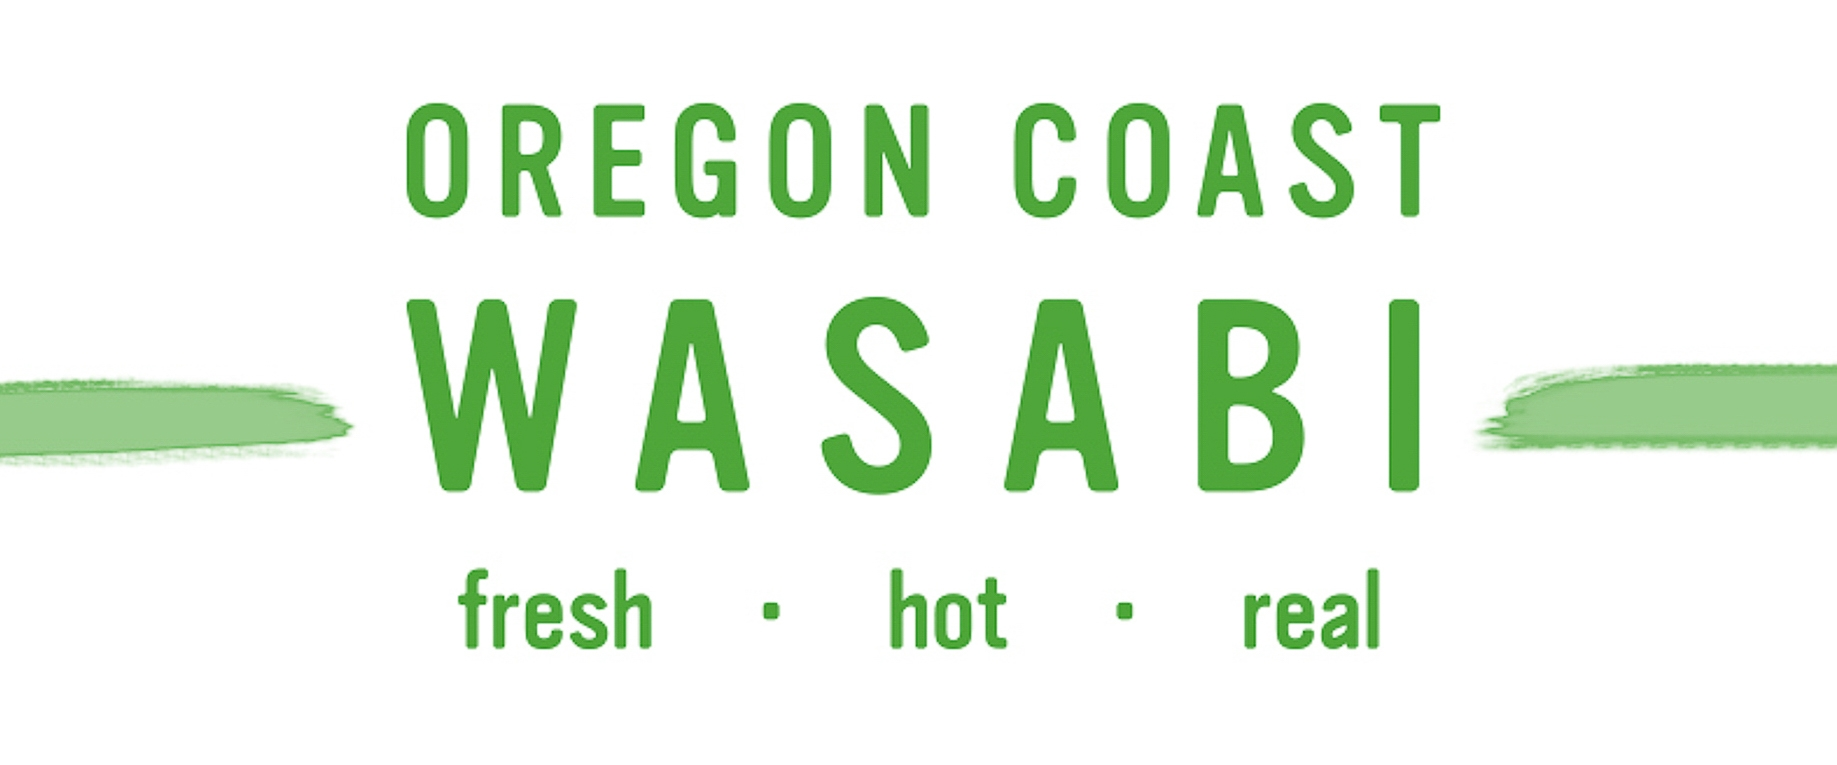 Jennifer Bloeser CEO Oregon Coast Wasabi - Portland Culinary Podcast Episode 23